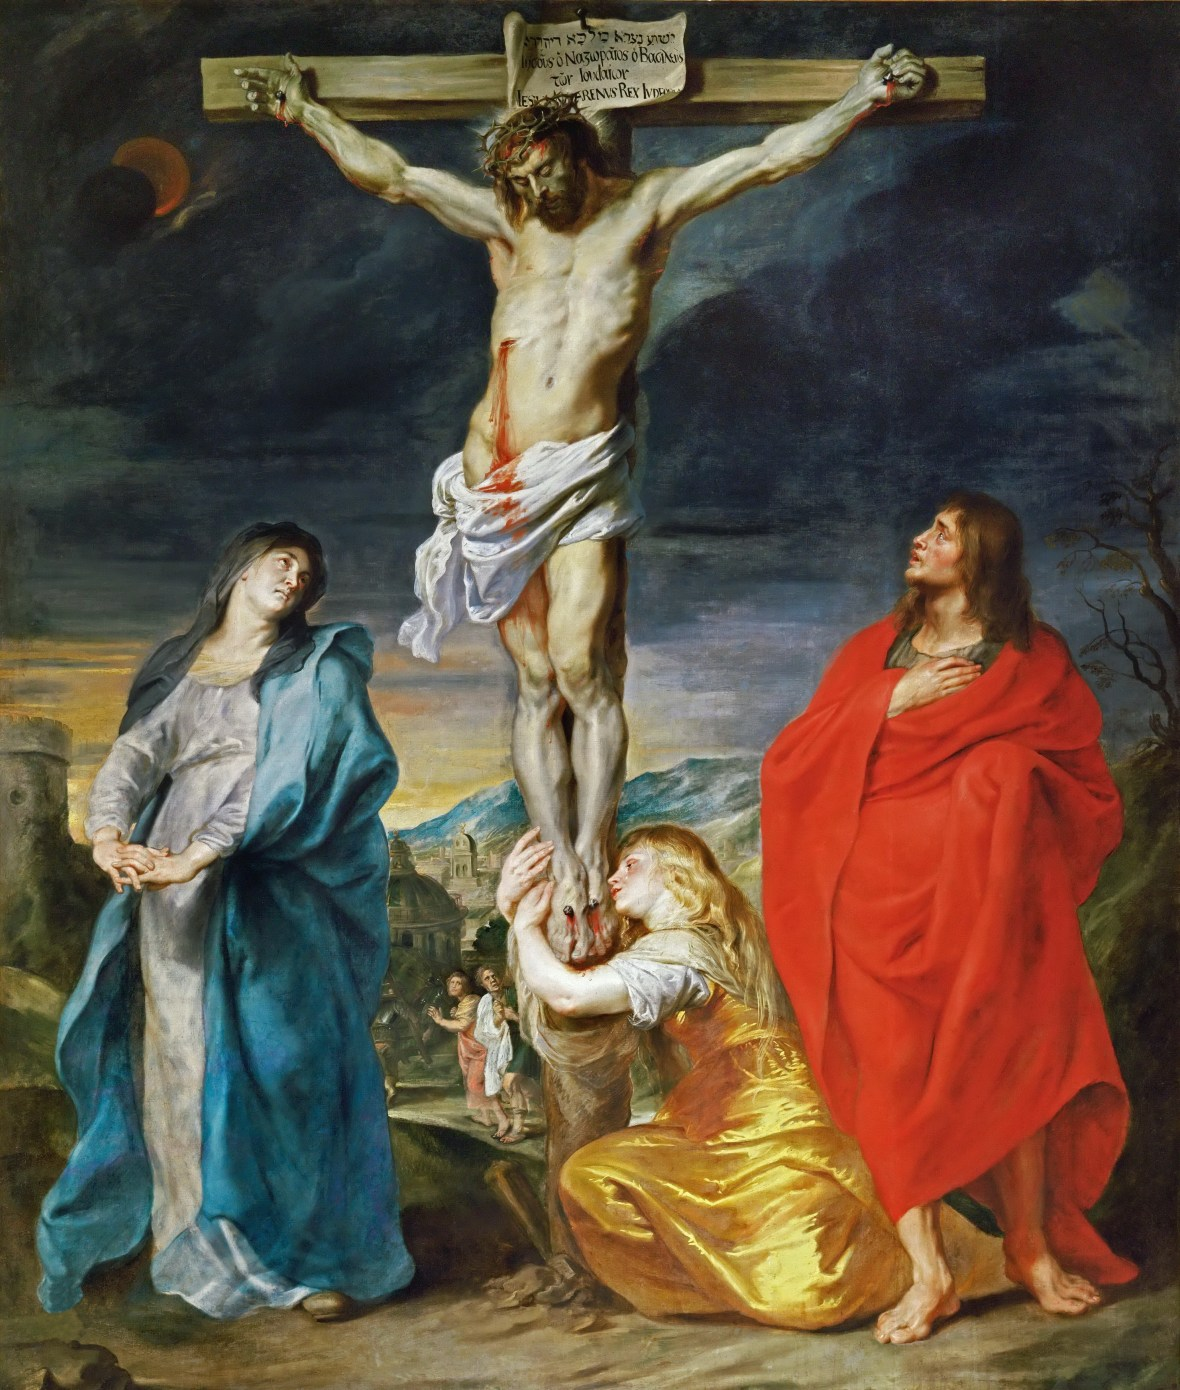 Anthony Van Dyck, Crucifixion with the Virgin Mary, St John and St Mary Magdalene,1619.